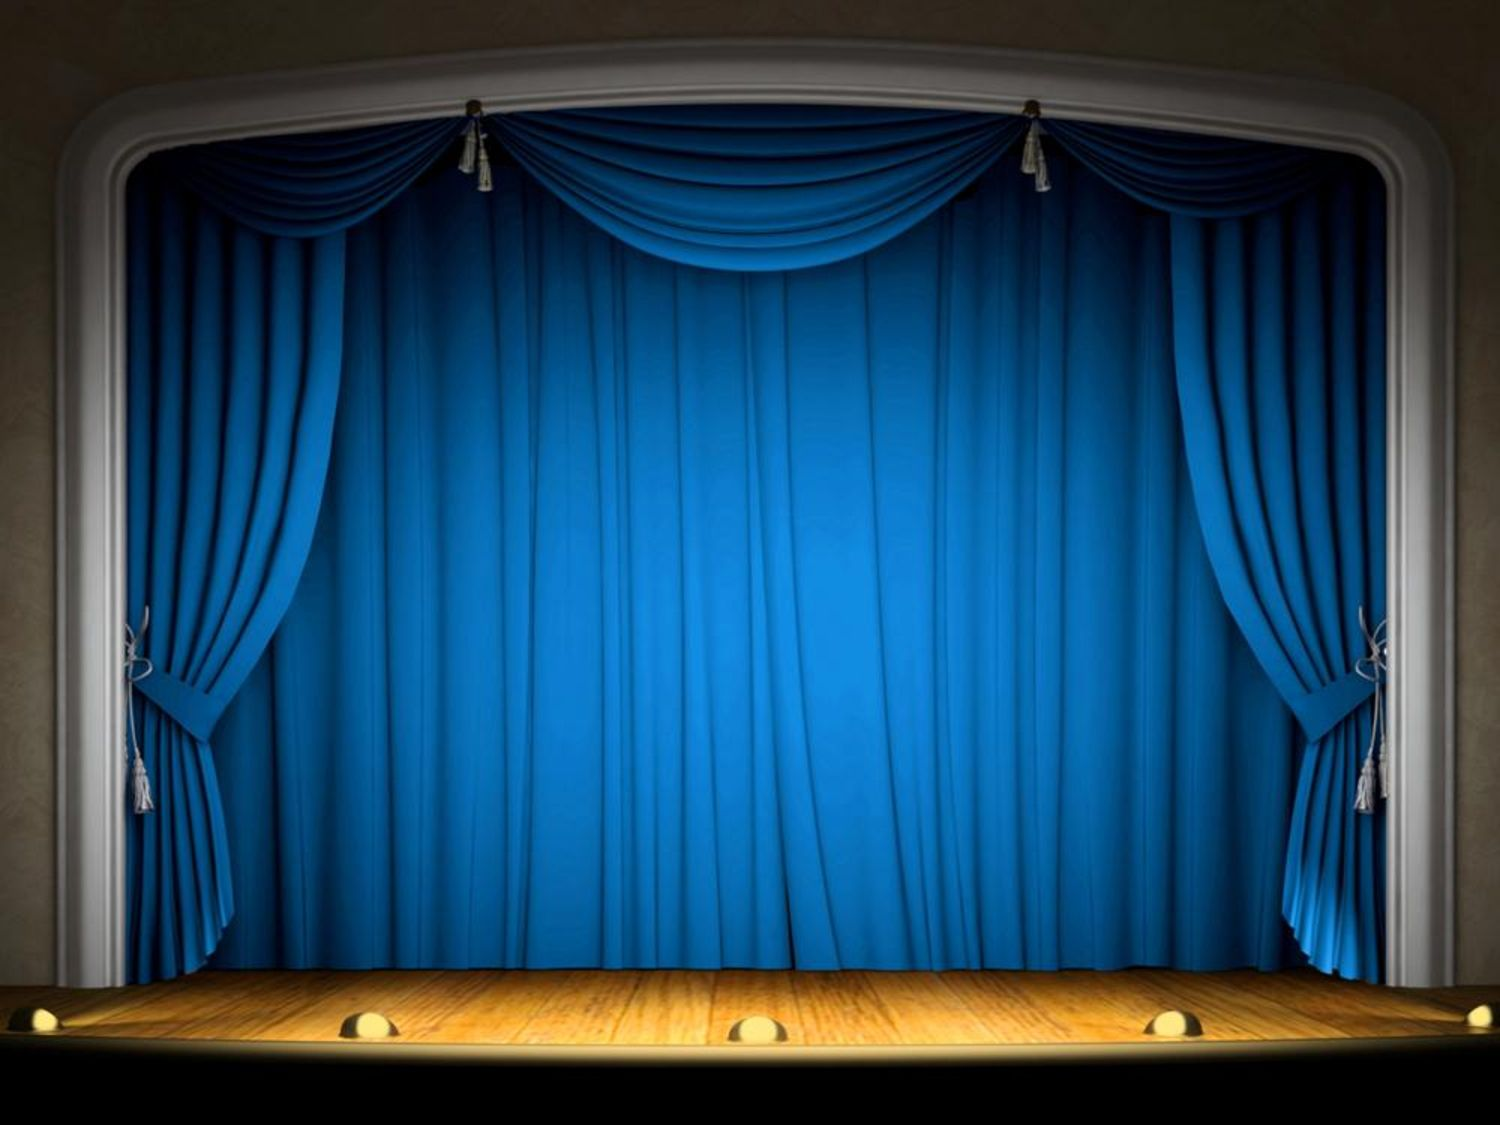 Blue Stage Powerpoint Background Hd Backgrounds For Powerpoint